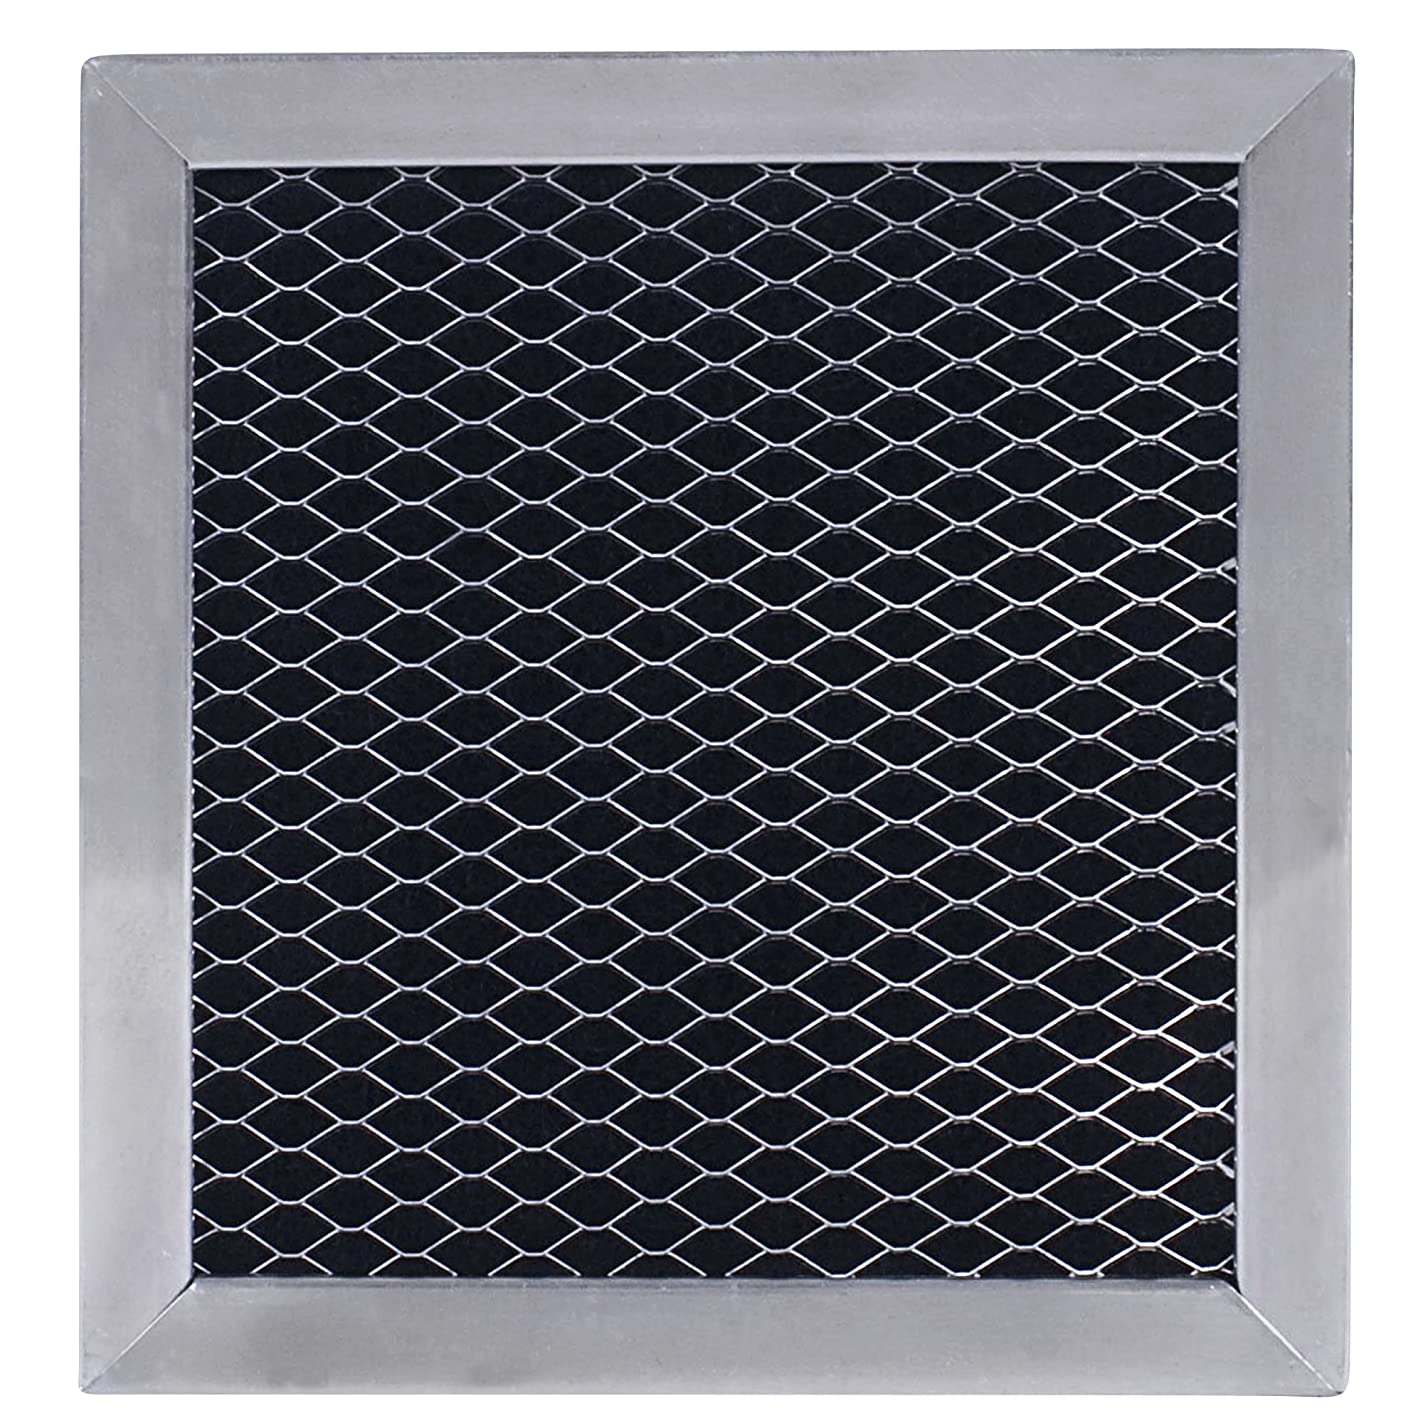 Whirlpool 8206230A Charcoal Filter, Single Unit, Black